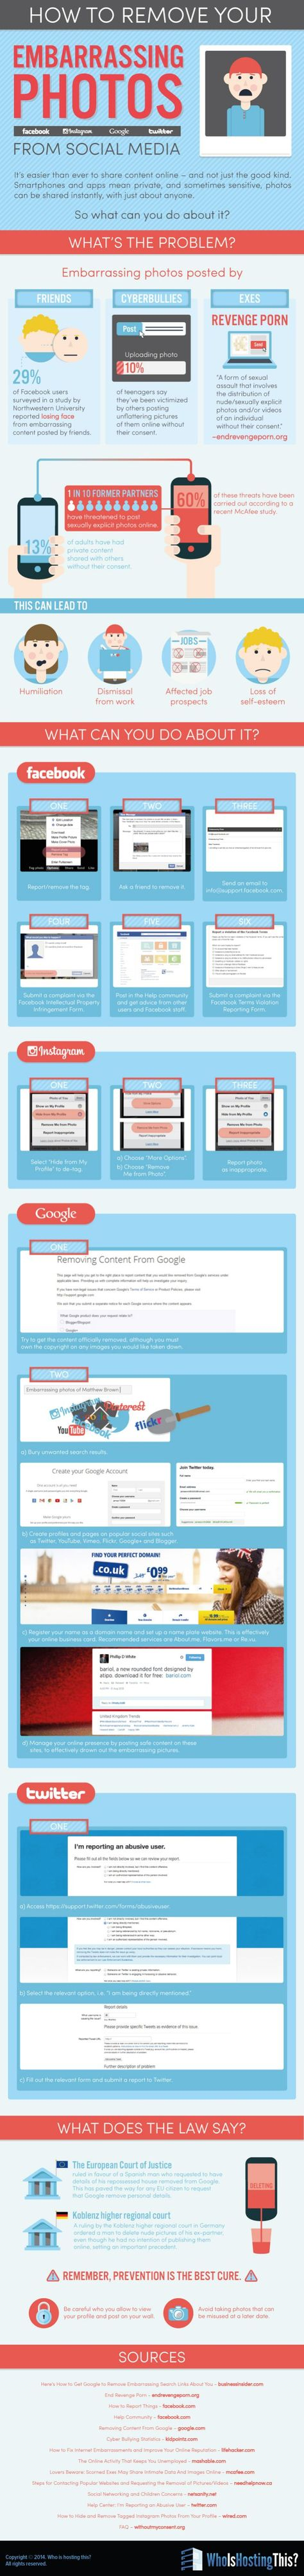 How to Remove Your Embarrassing Photos from Social Media #infographic